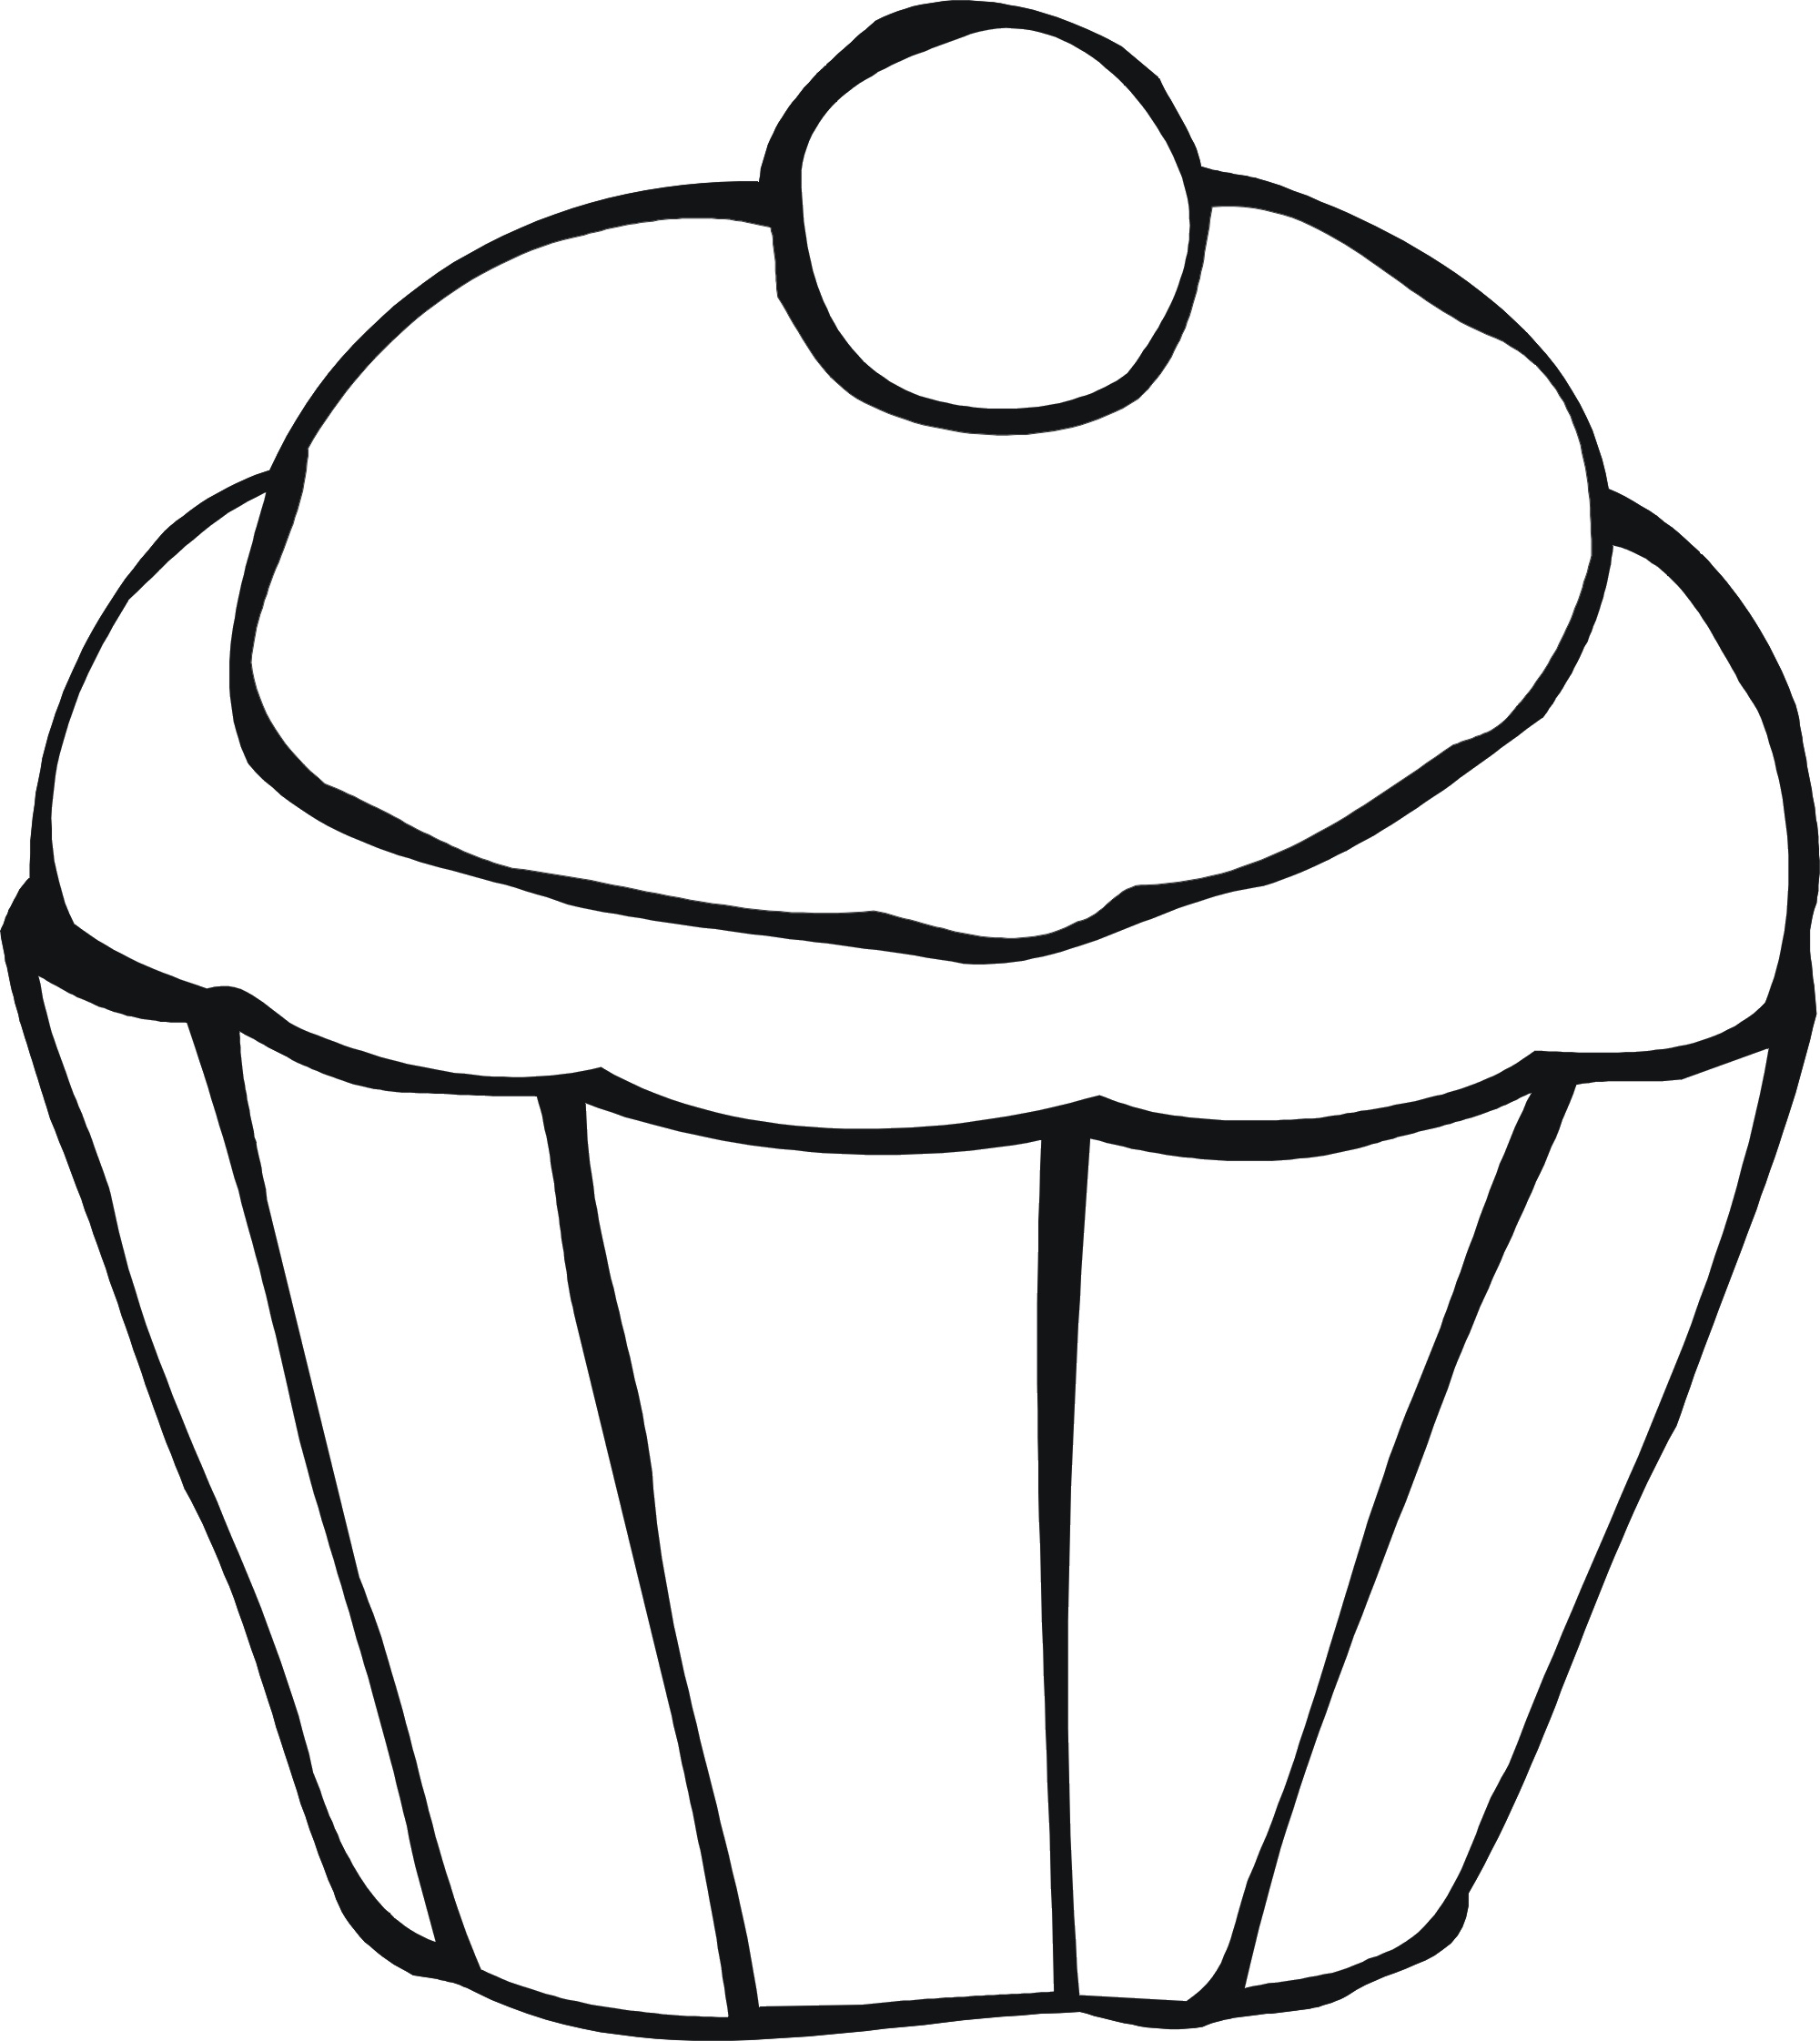 2000x2243 Food Coloring Pages Children's Best Activities